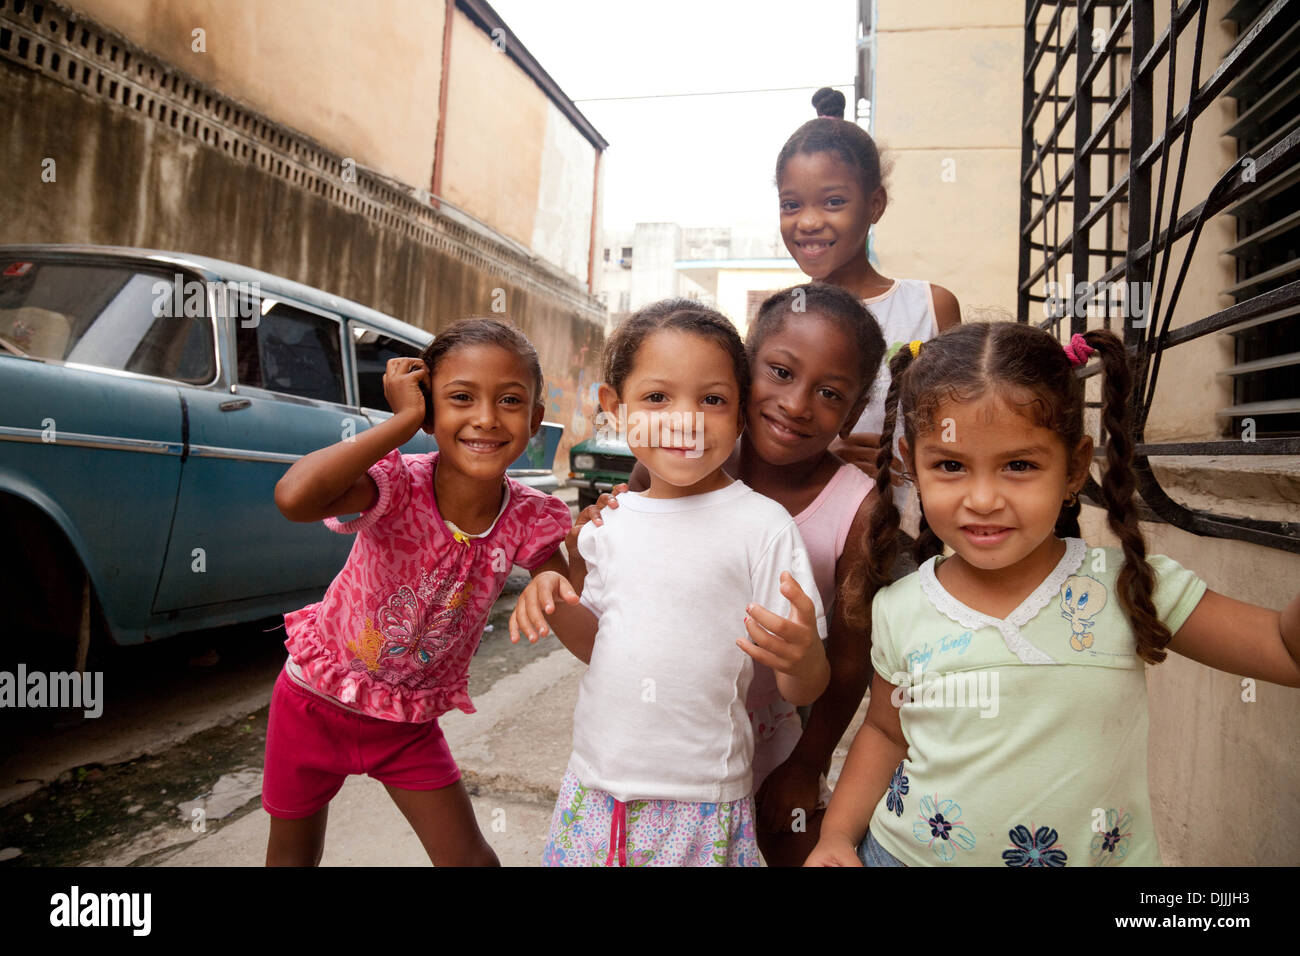 cuba-children-happy-cuban-children-playing-on-the-street-in-a-poor-DJJJH3.jpg